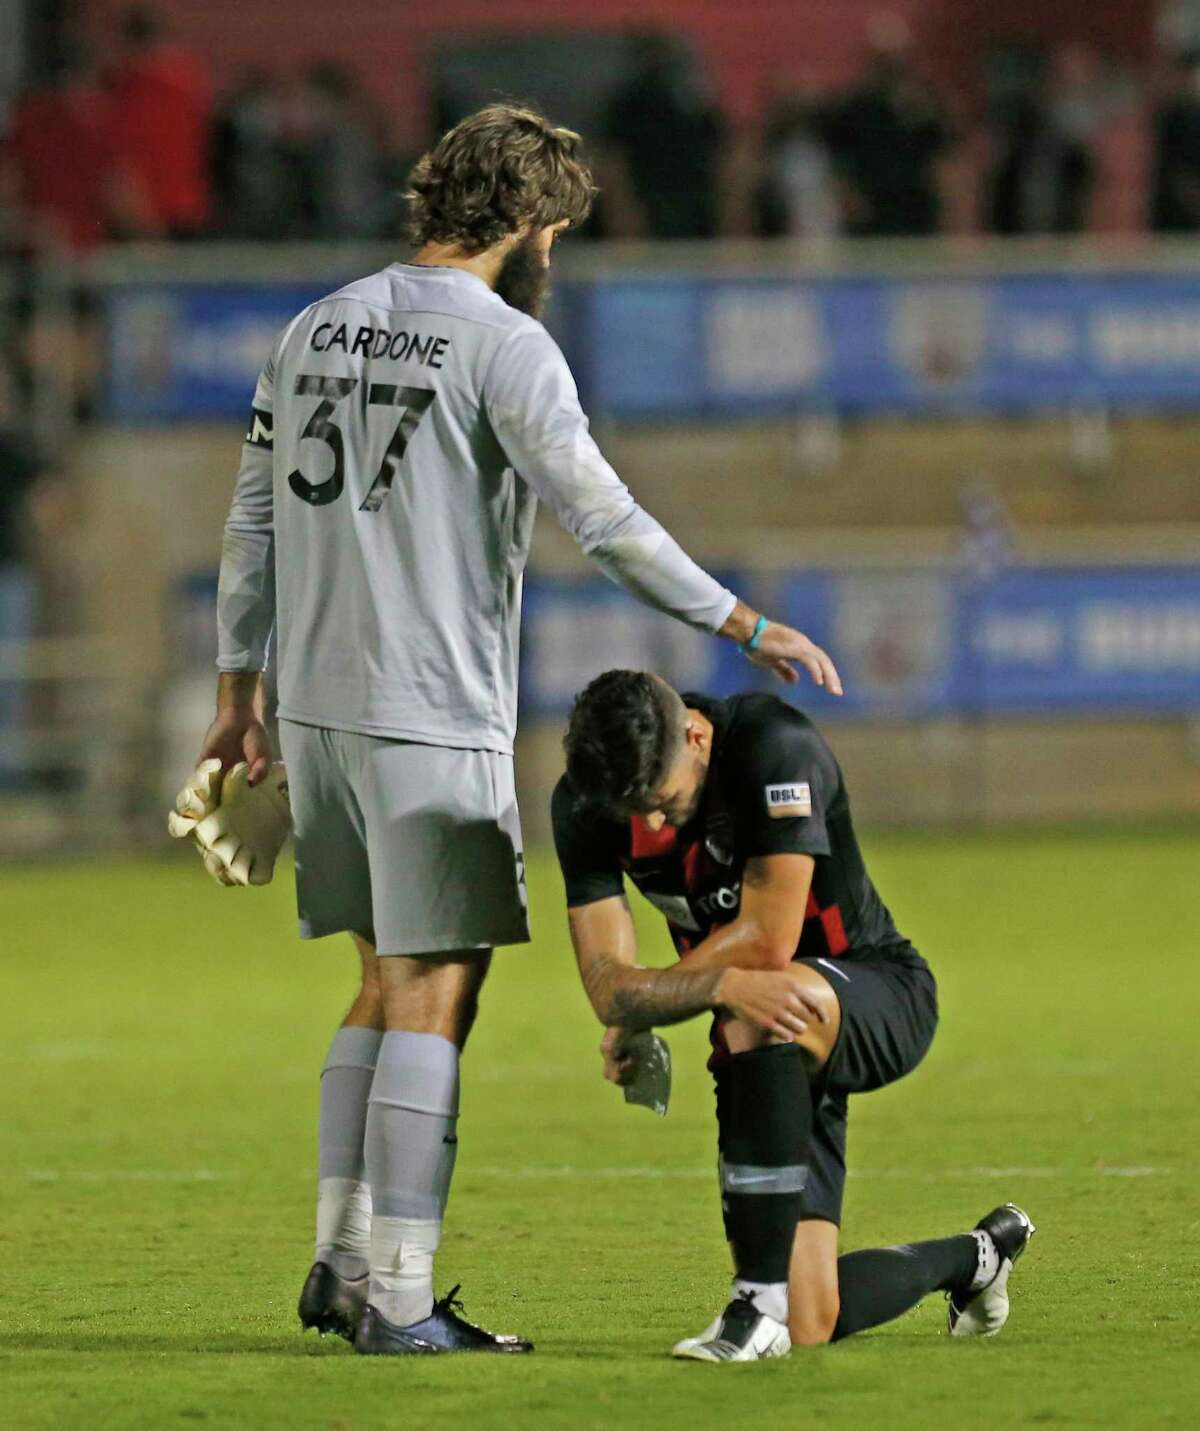 SAFC goalie Matthew Cardone consoles SAFC Mitchell Taintor after they lost in OT 1-0. San Antonio FC vs. New Mexico United in Western Conference Quarterfinal match on Saturday, October 10, 2020 at Toyota Field.